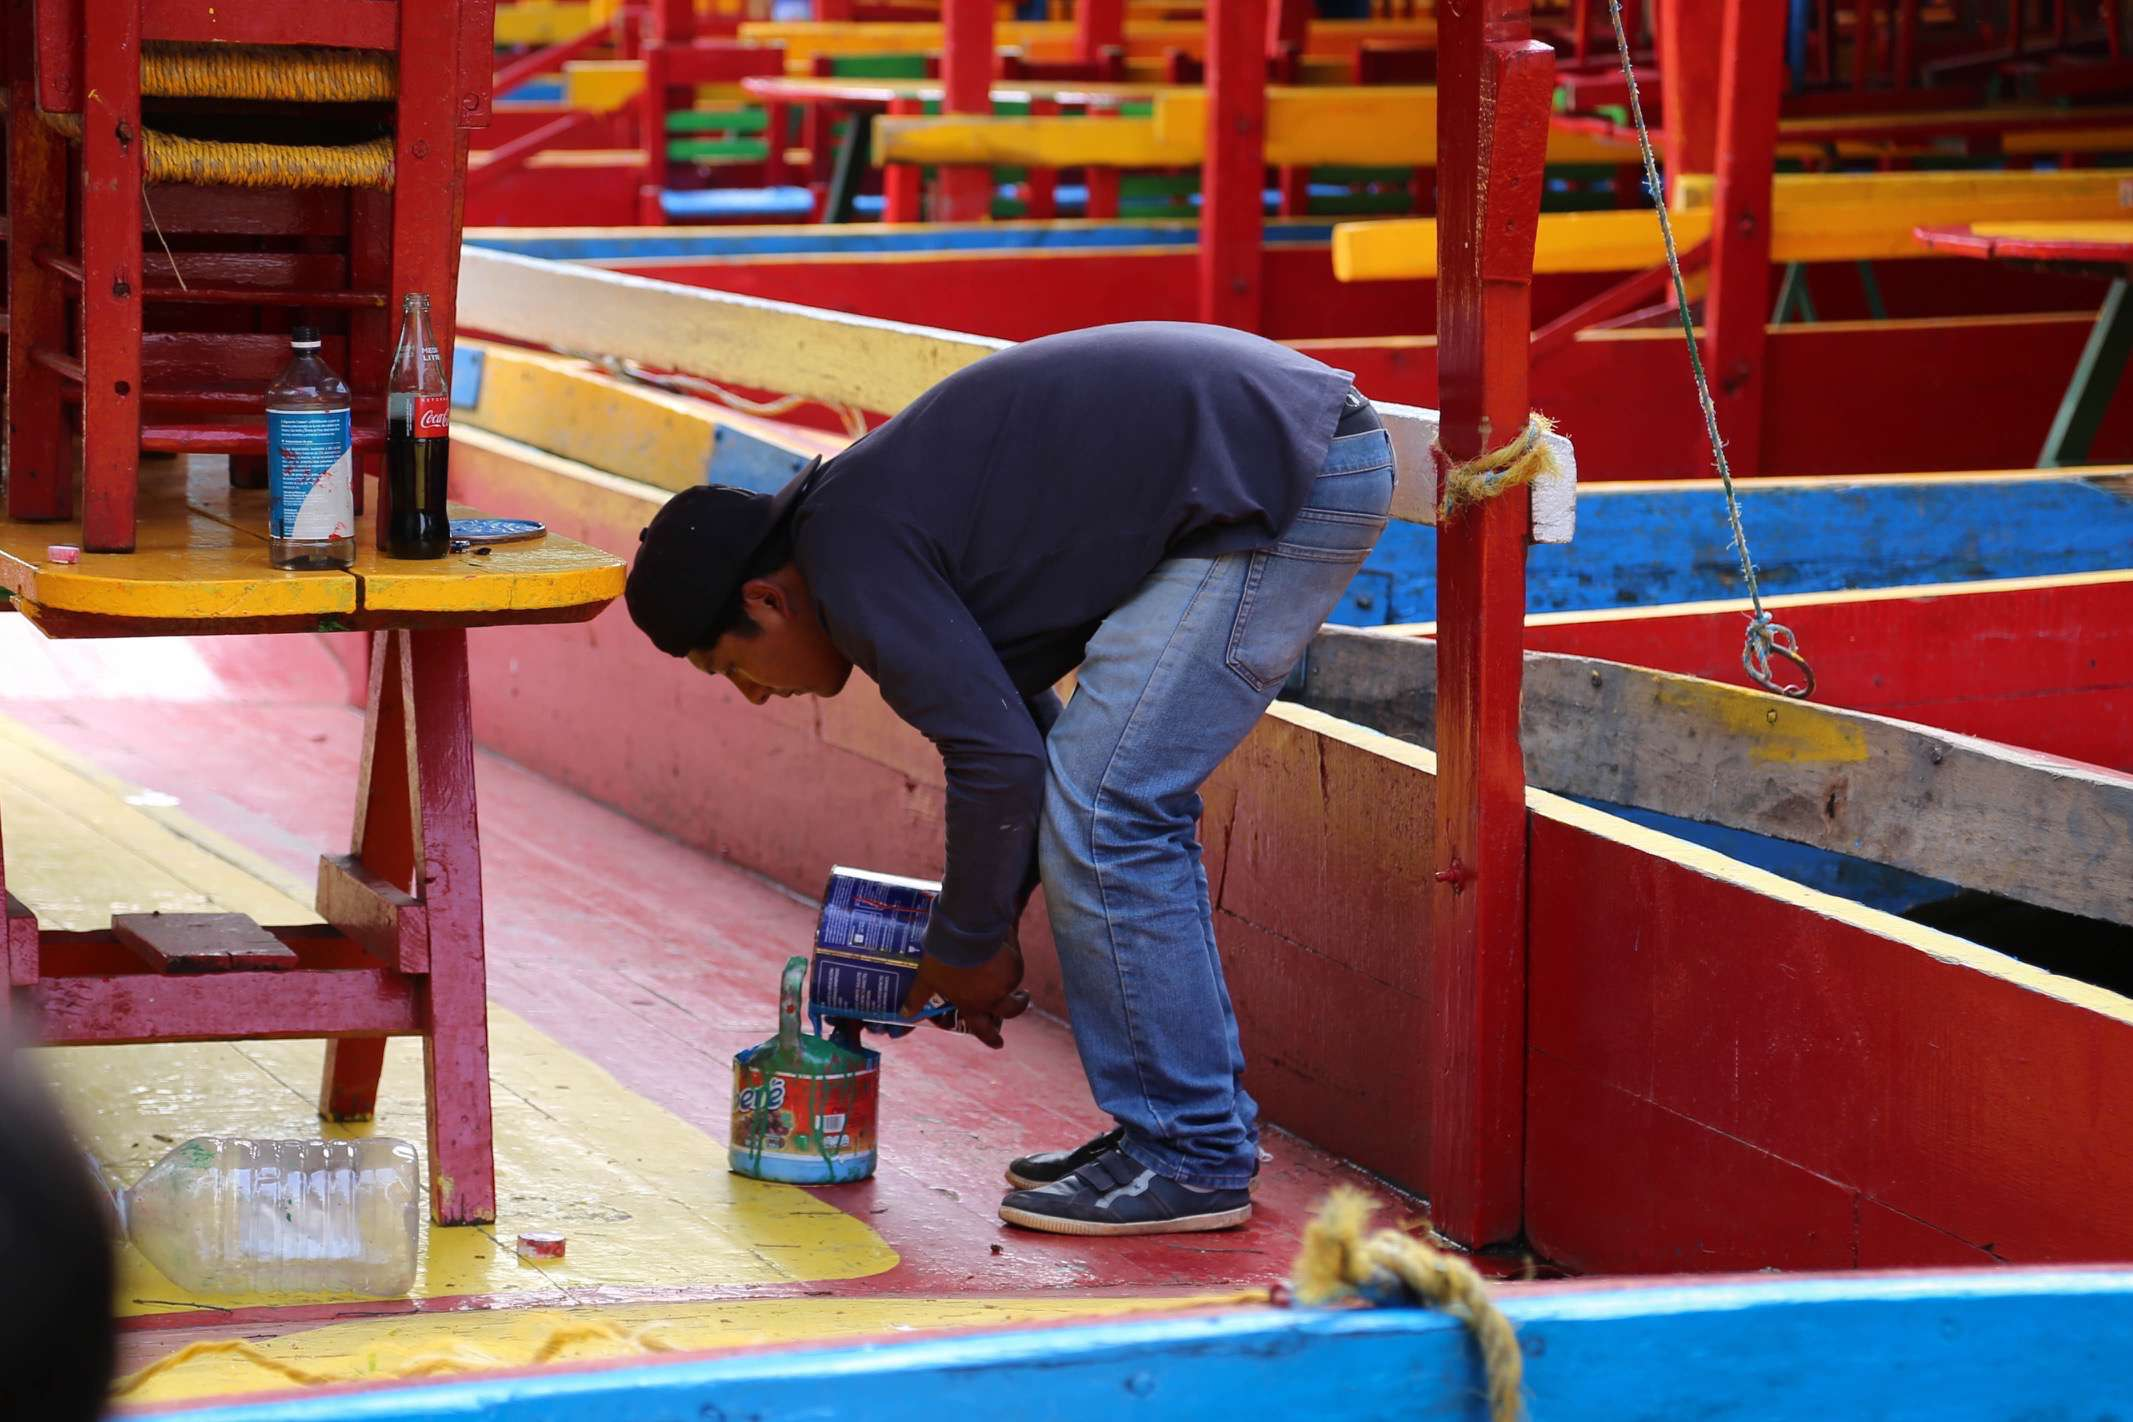 A worker readies some paint to apply to his trajinera.